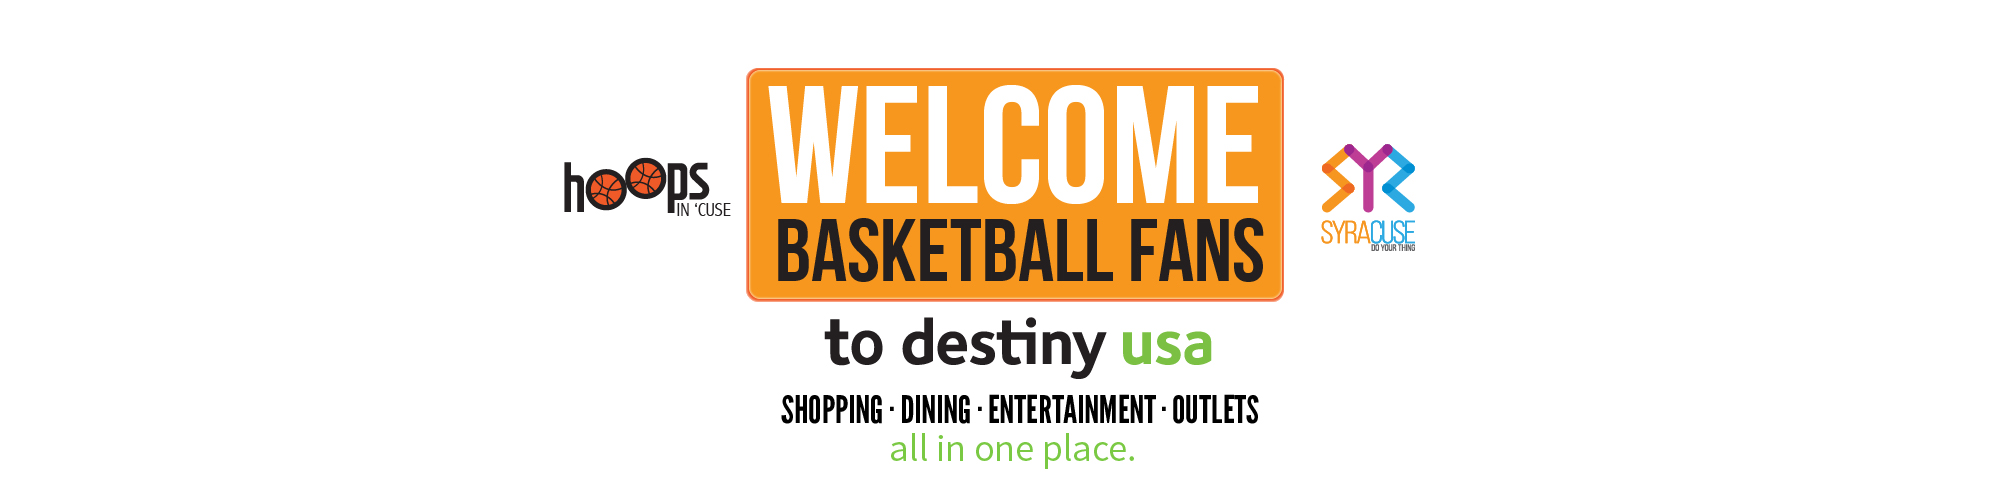 Welcome Basketball Fans